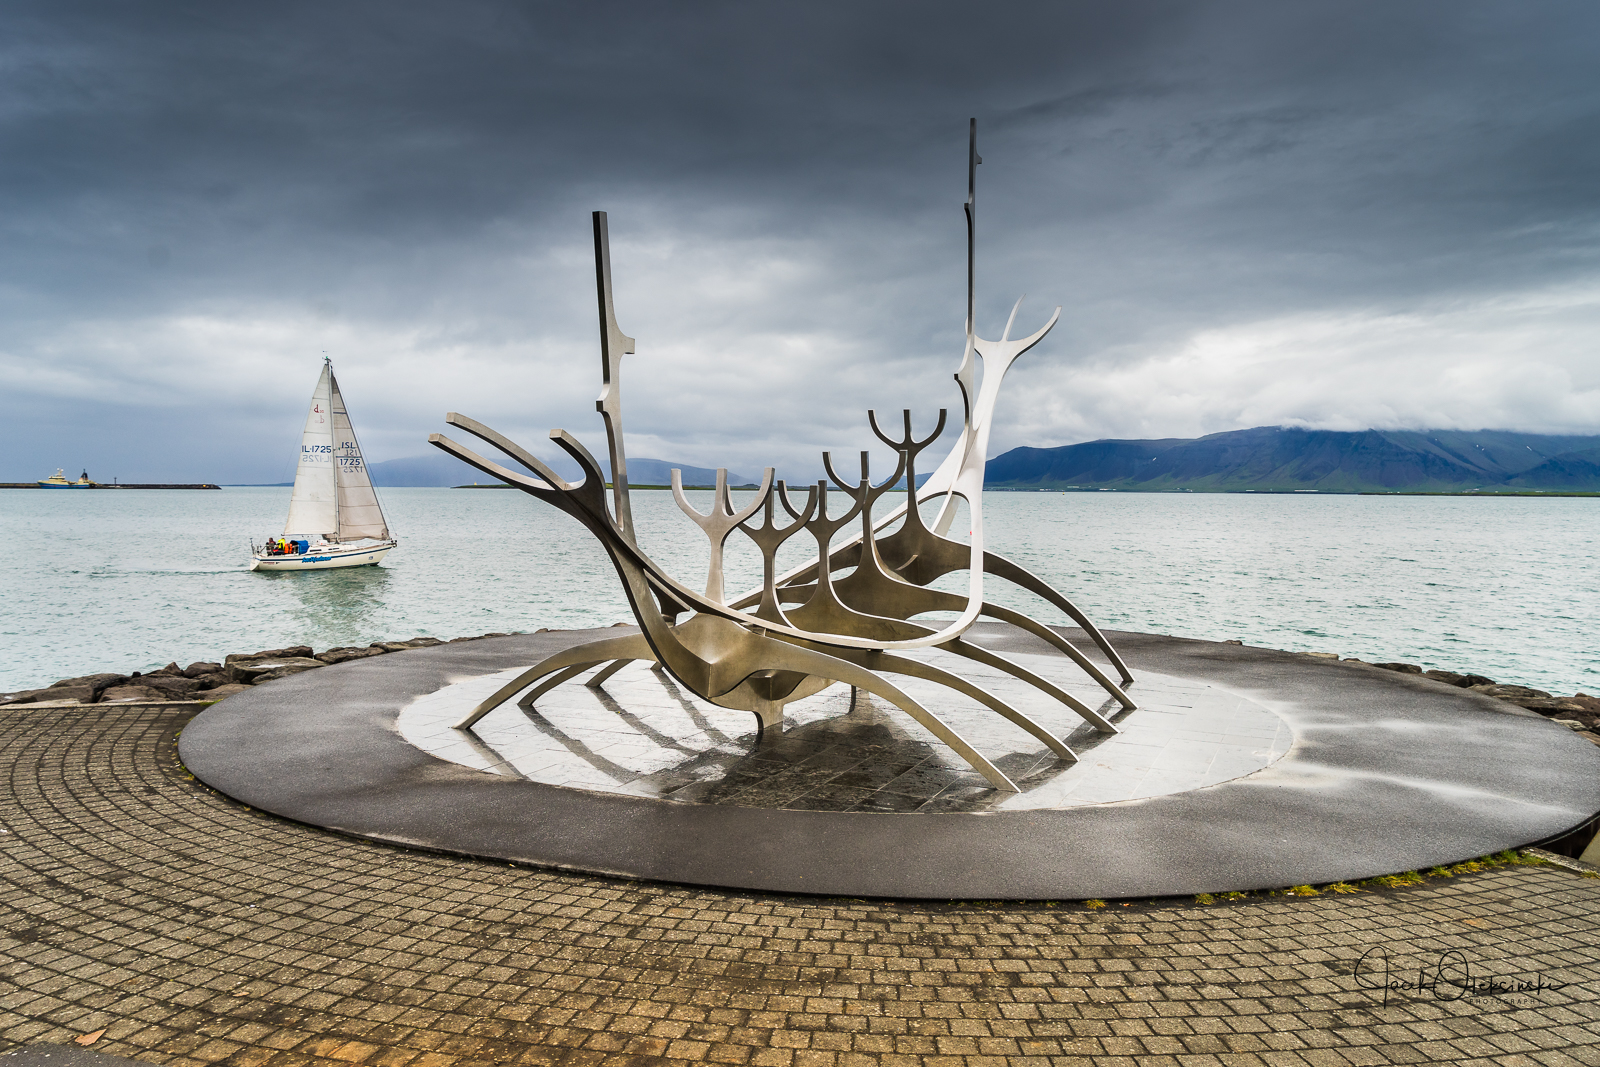 Sun Voyager (Icelandic: Sólfar) by Jón Gunnar Árnason located in the harbour